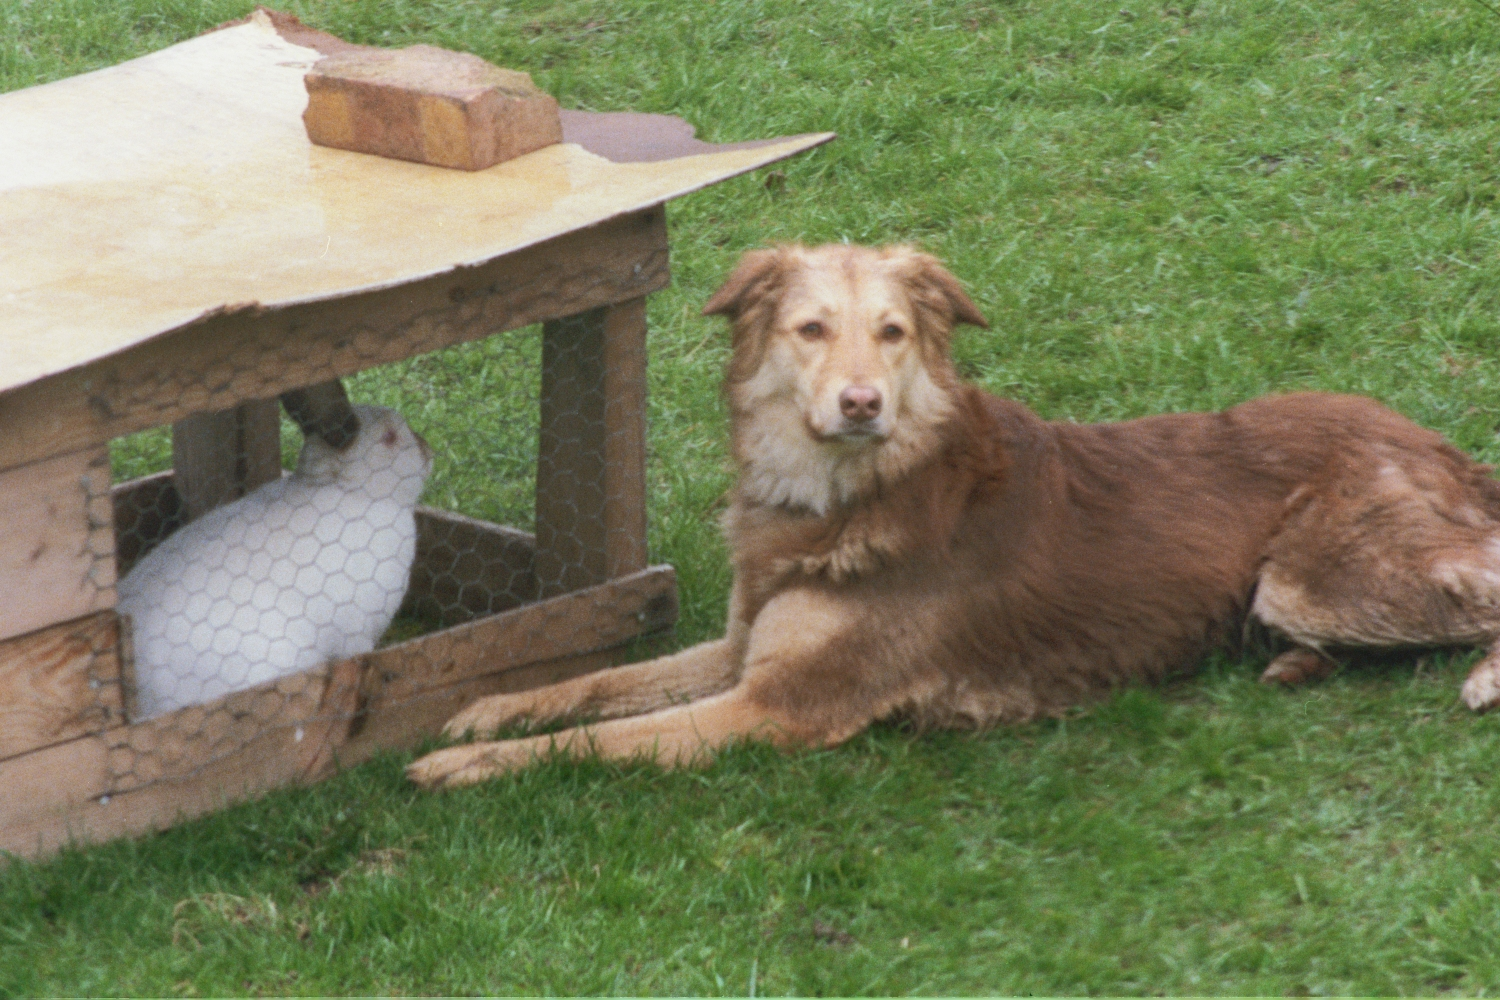 Penny (dog) and Bobtail (rabbit)